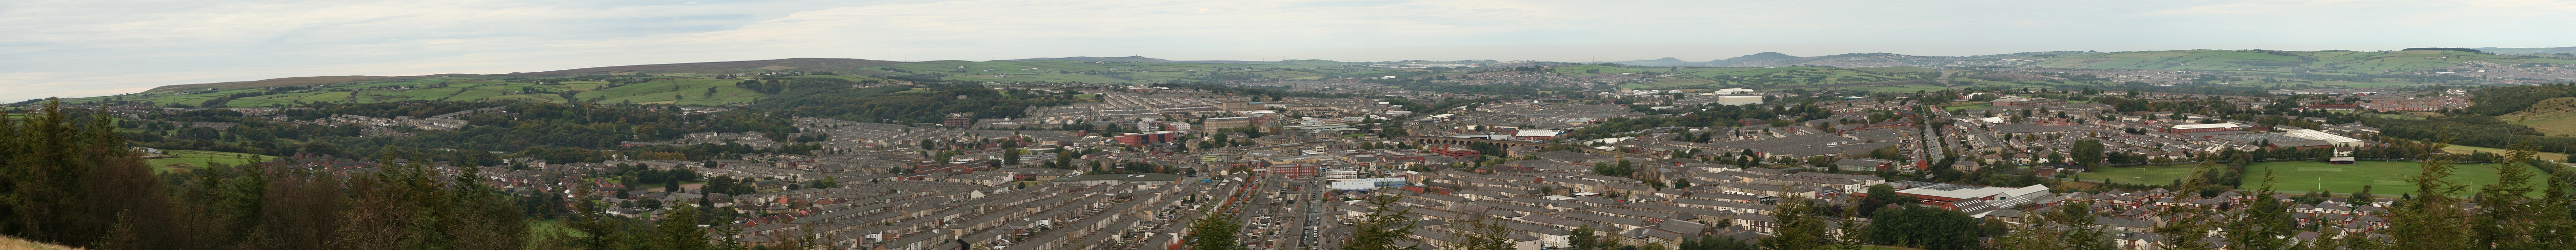 Panorama of Accrington, Lancashire from the Hillock Vale